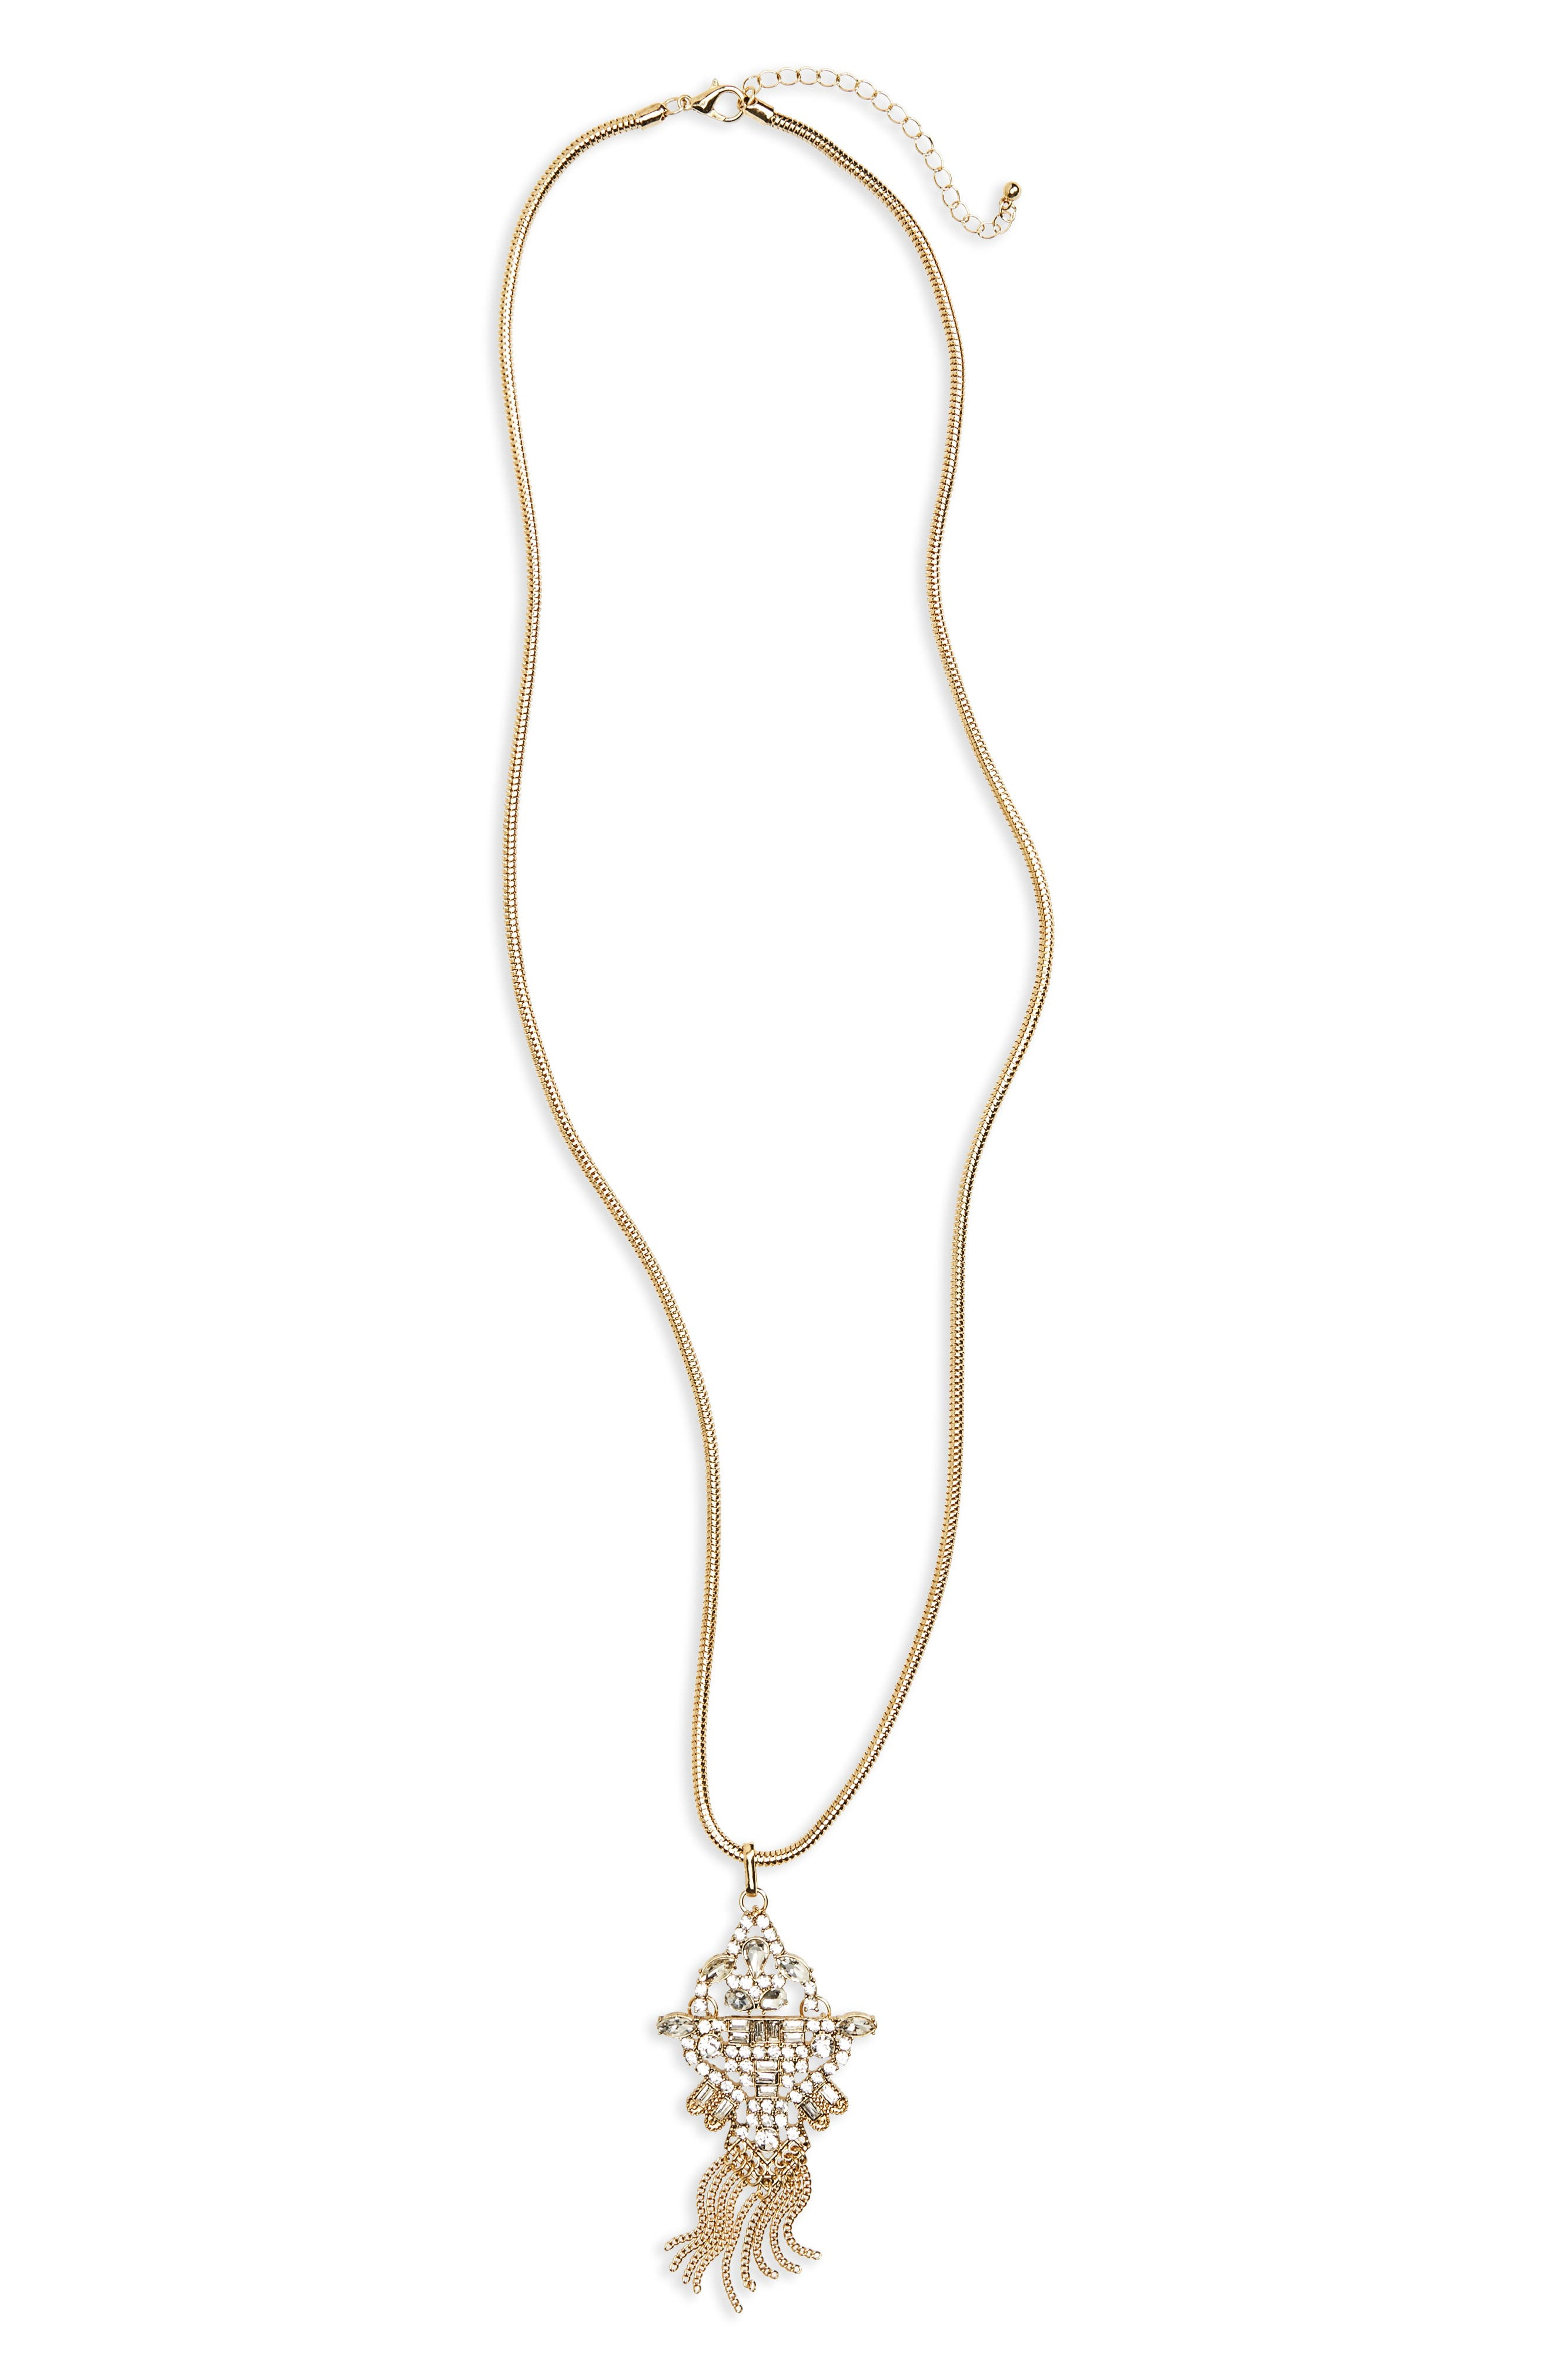 Crystal Pendant Necklace,                         Main,                         color, Gold/ Crystal